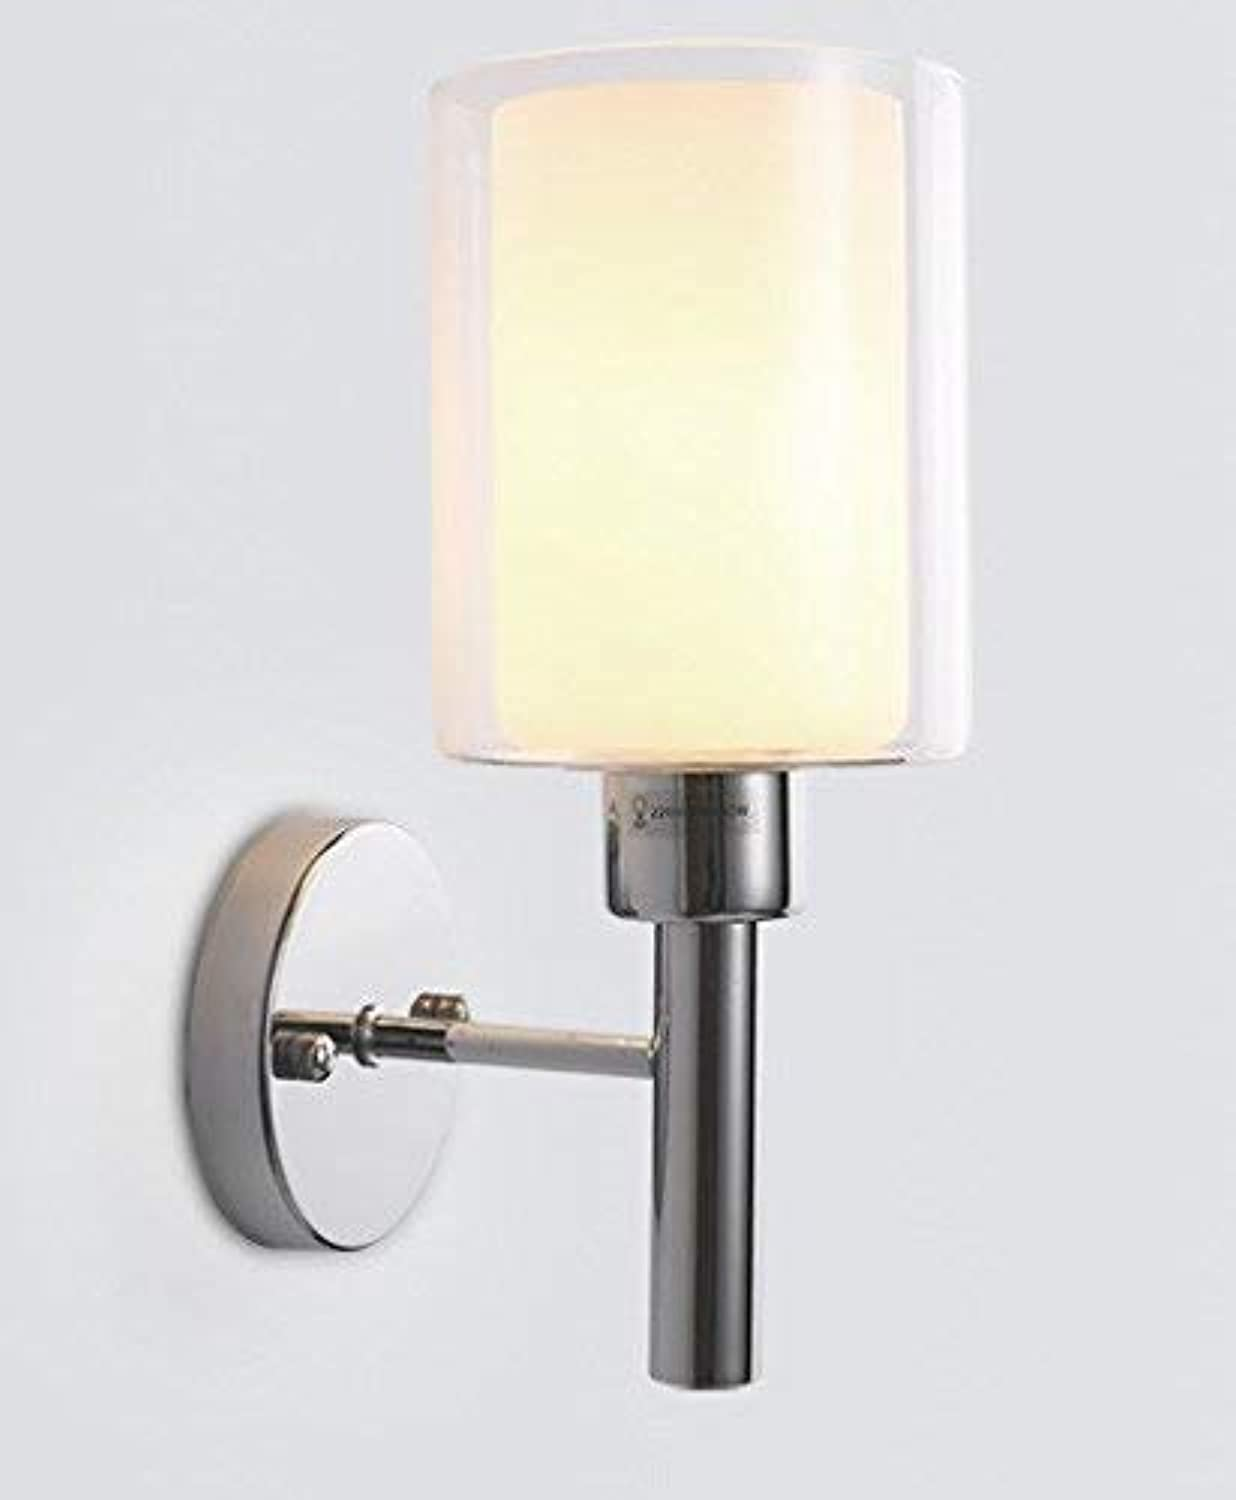 WALL LIGHT HOME Bathroom Sink Basin Tap Brass Mixer Tap Washroom Mixer Faucet Showers full copper full-suite shower faucet shower bath shower kit shower the copper tube t